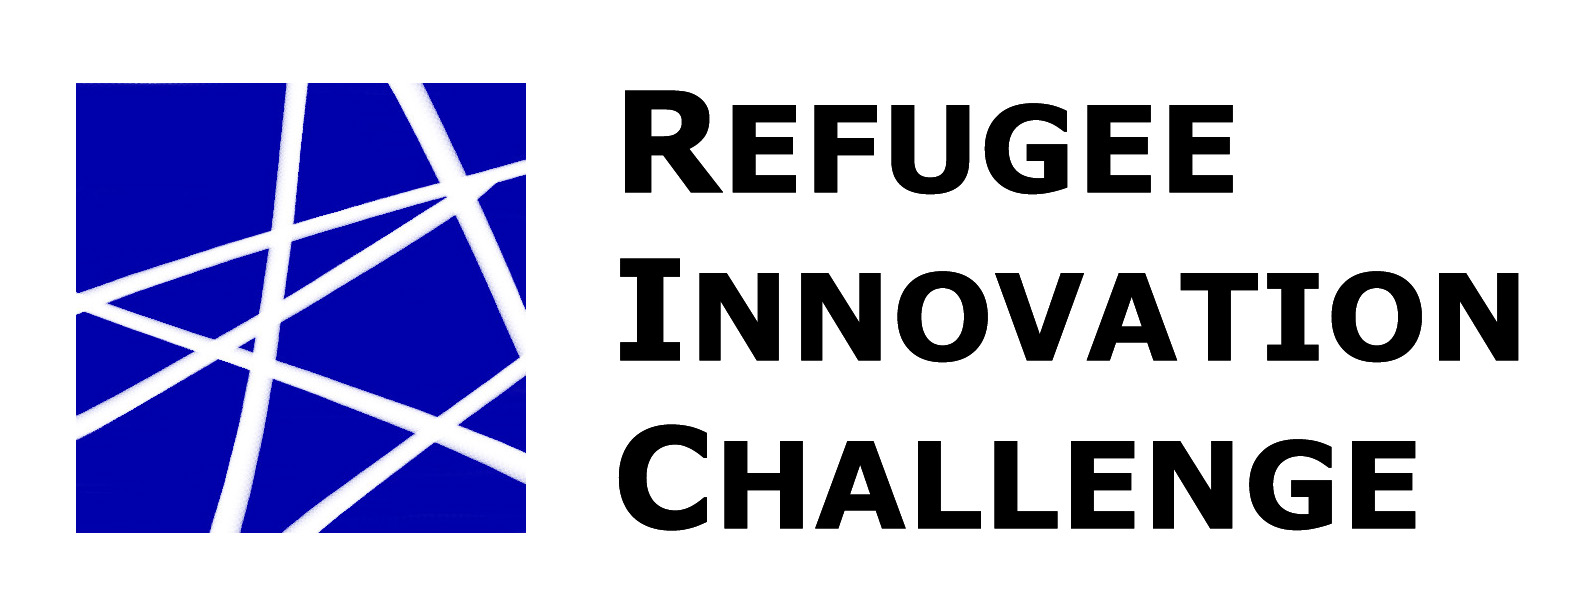 Refugee Innovation Challenge